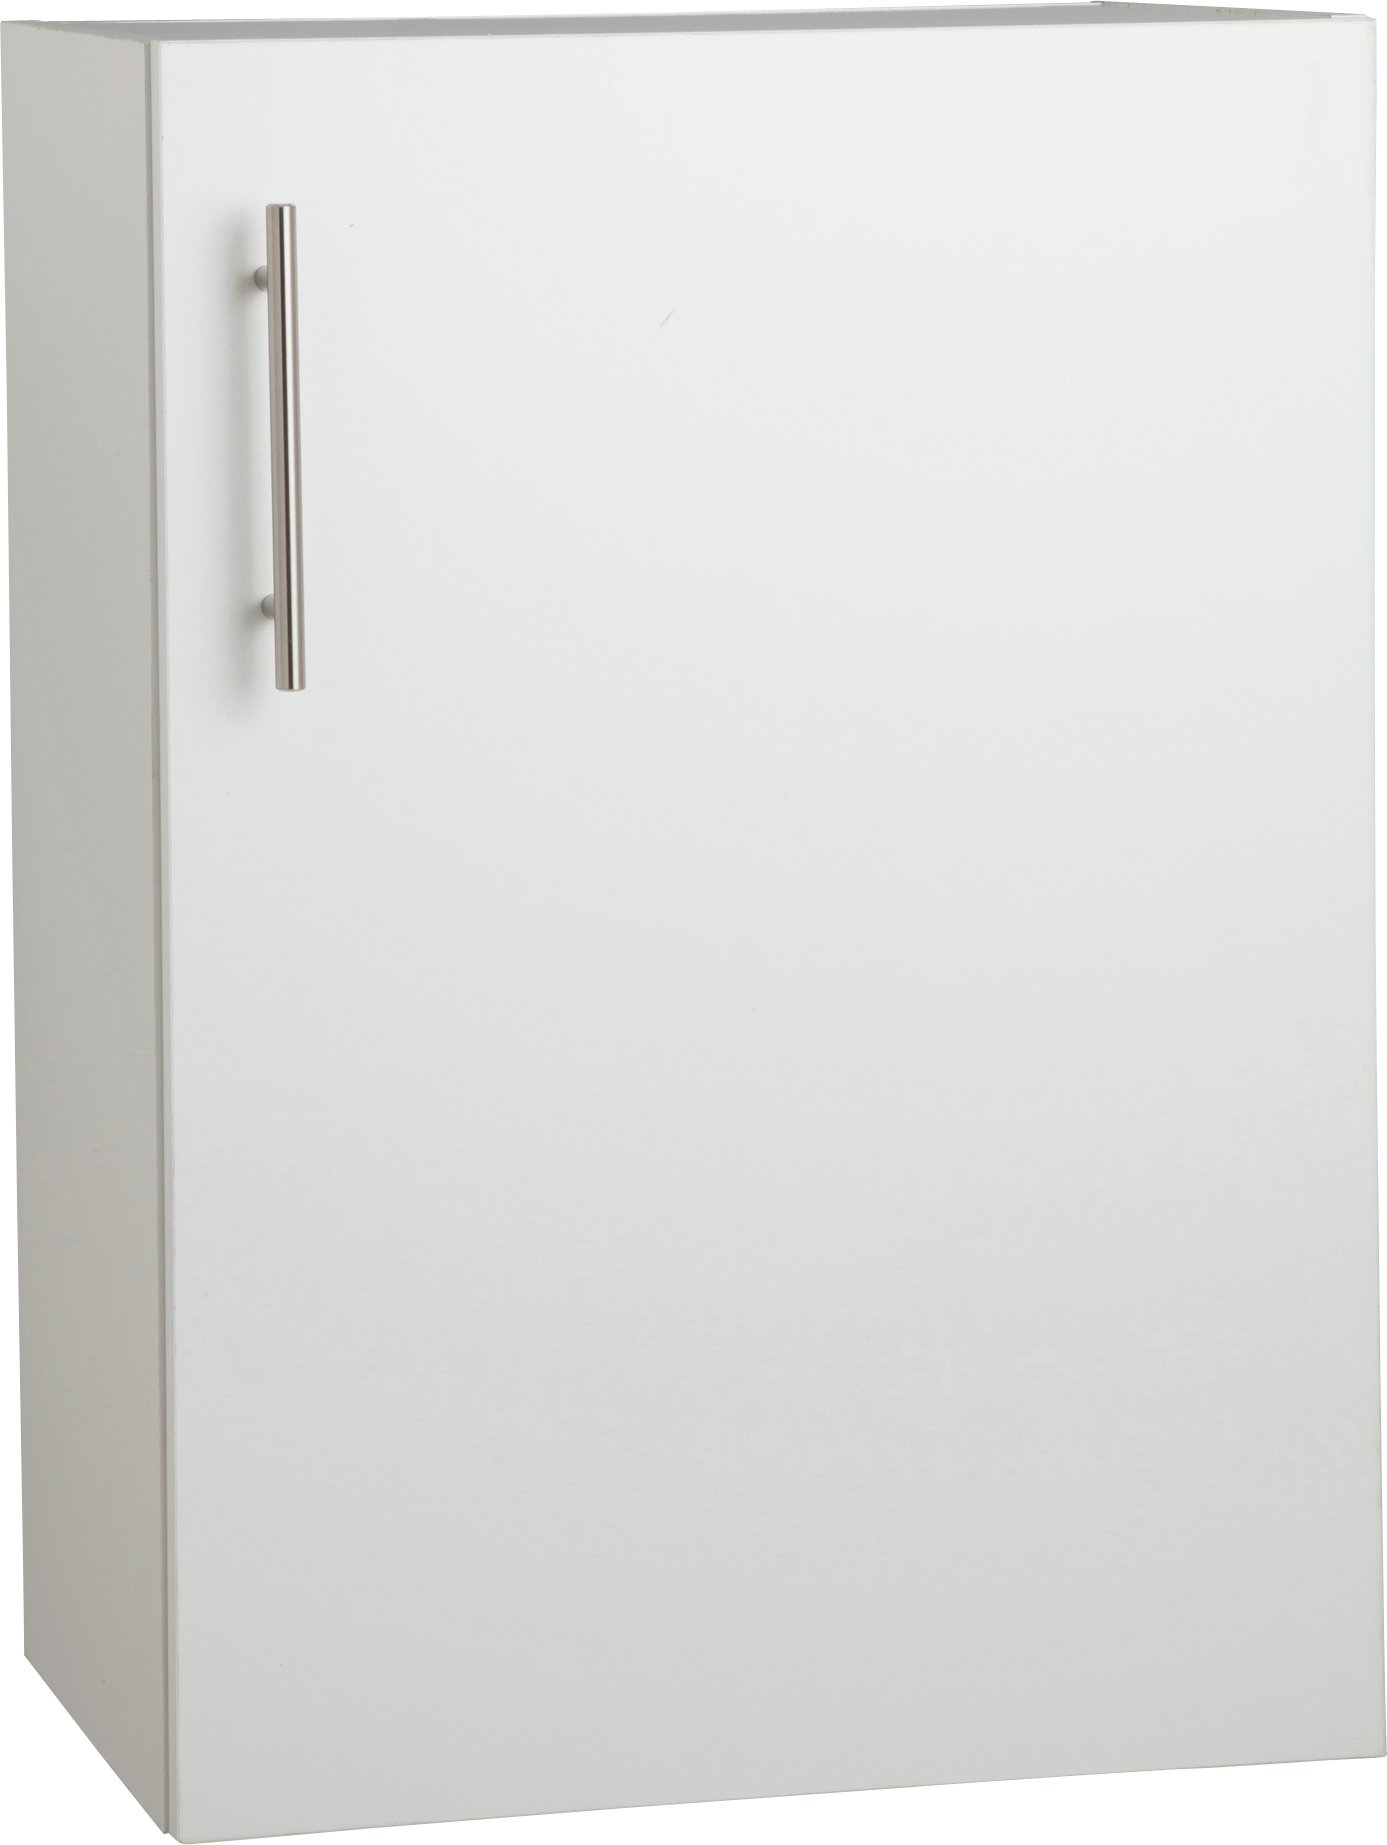 buy athina 500mm fitted kitchen wall unit - white at argos.co.uk